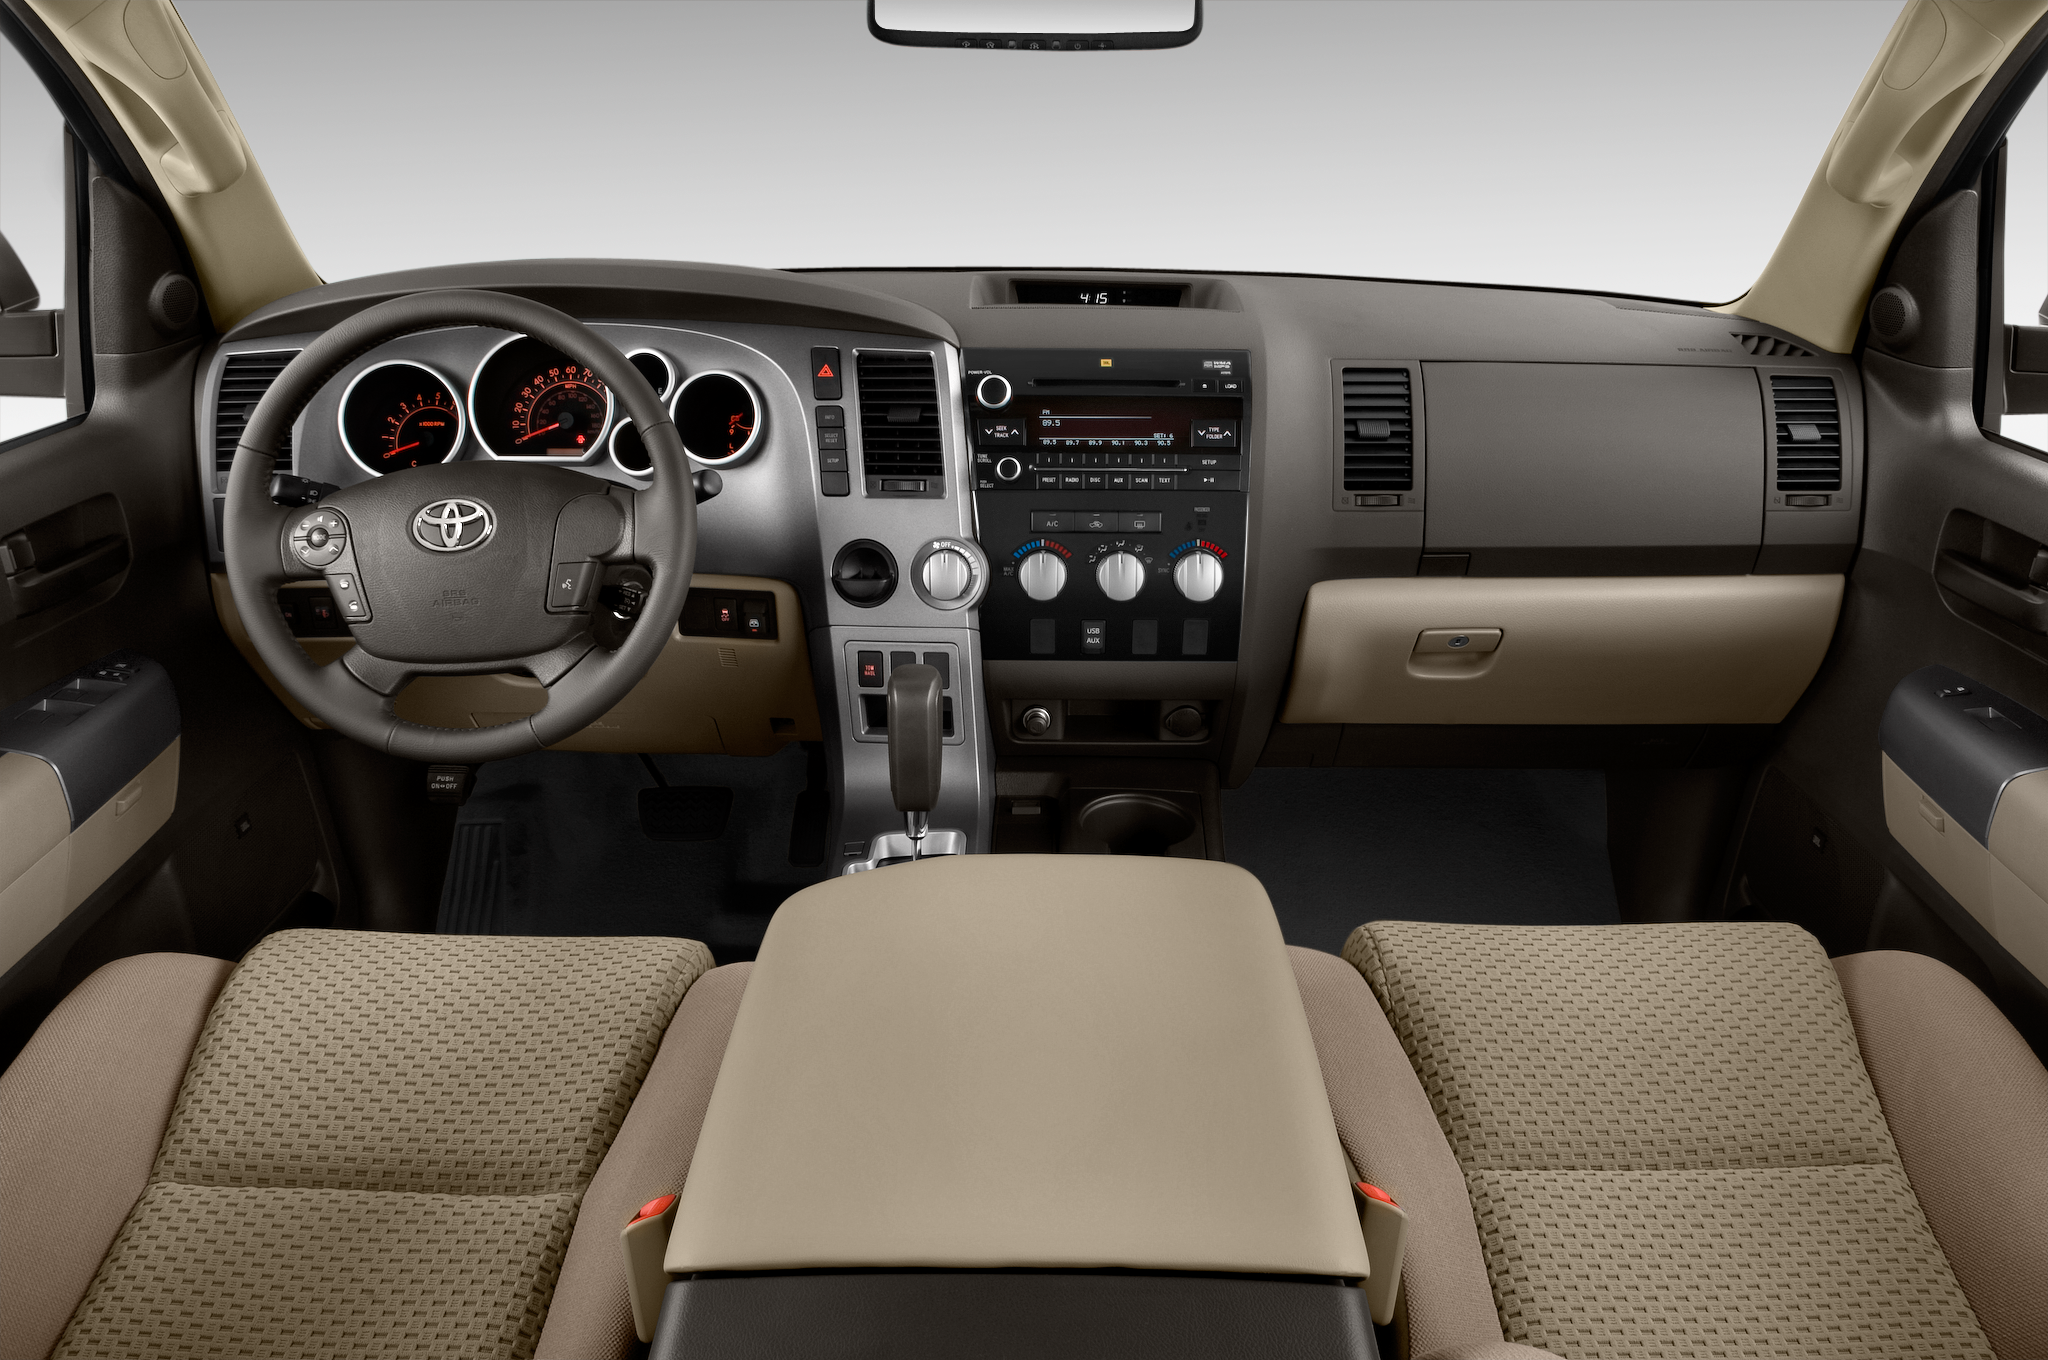 2010 Toyota Tundra and 2010 Toyota Sequoia Pricing Announced